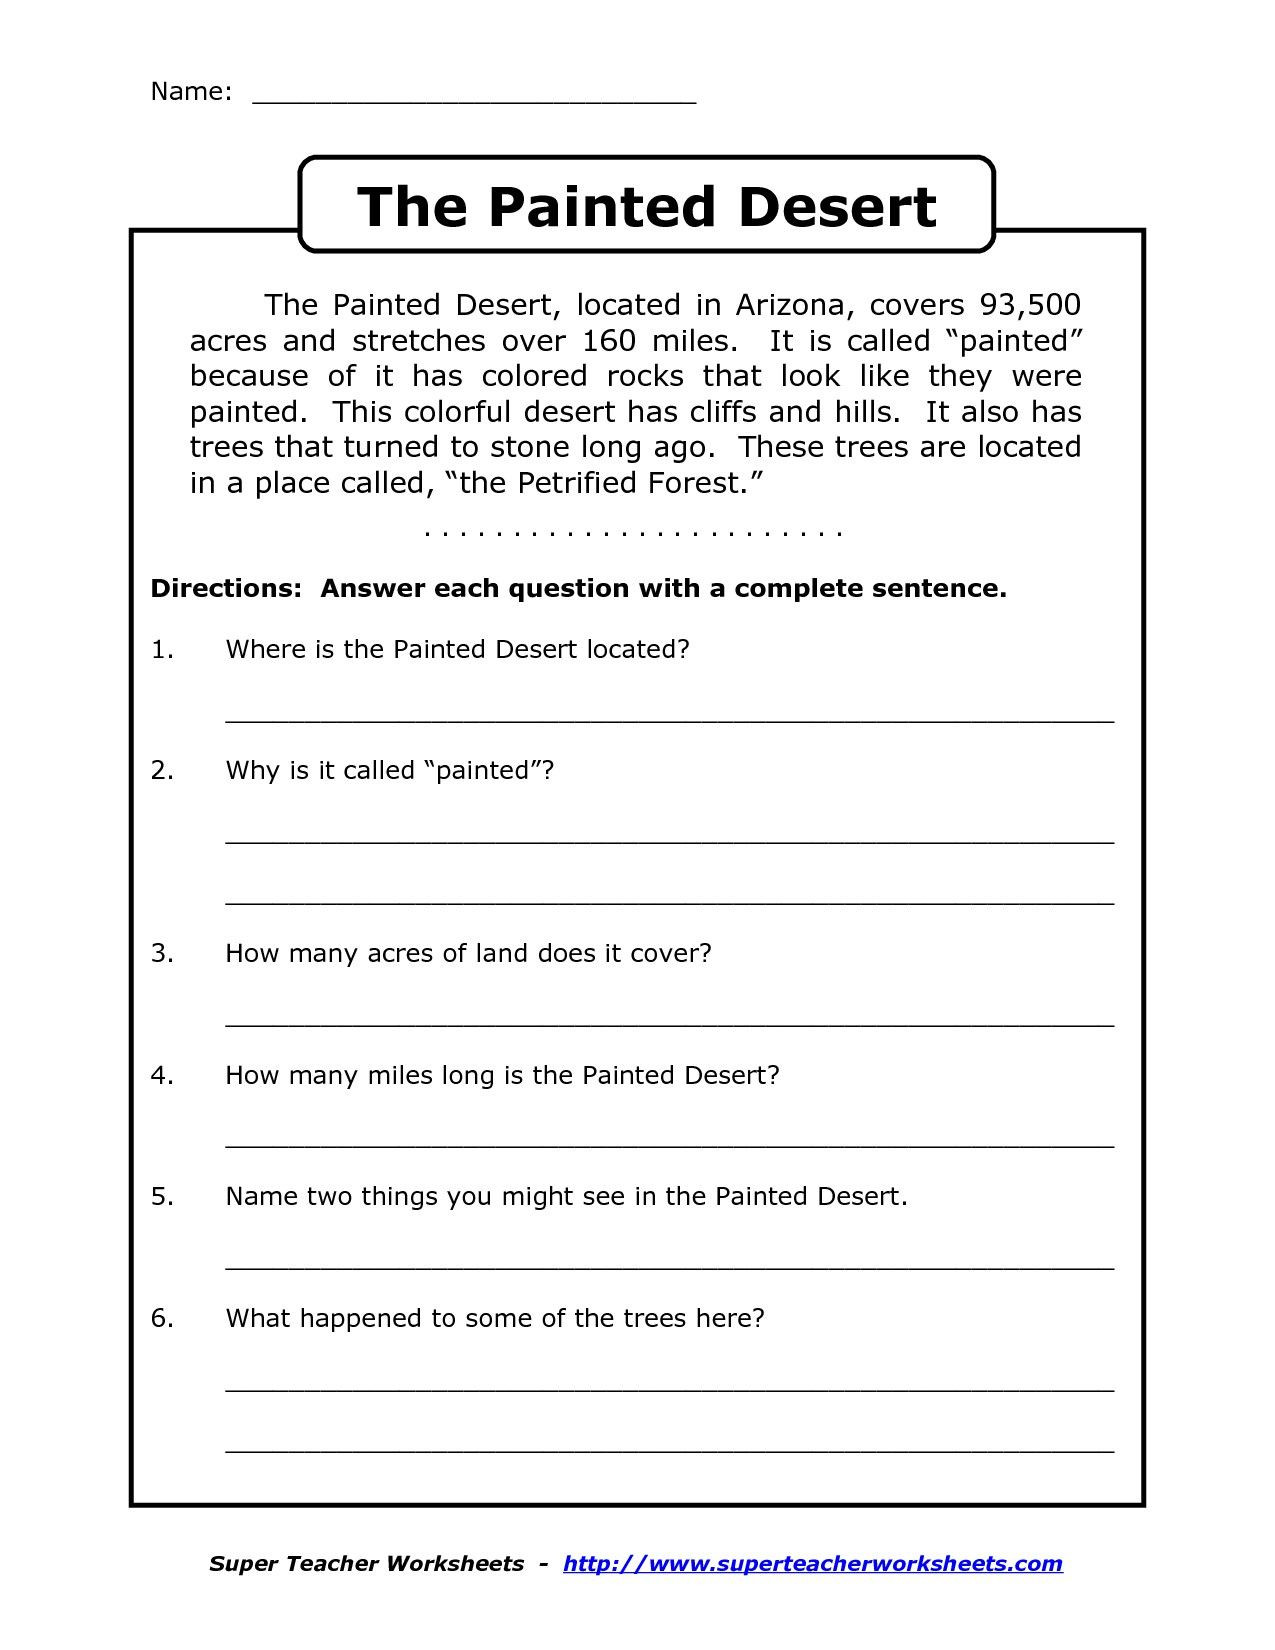 Editing Worksheets 3rd Grade Prehension Worksheet for 1st Grade Y2 P3 the Painted